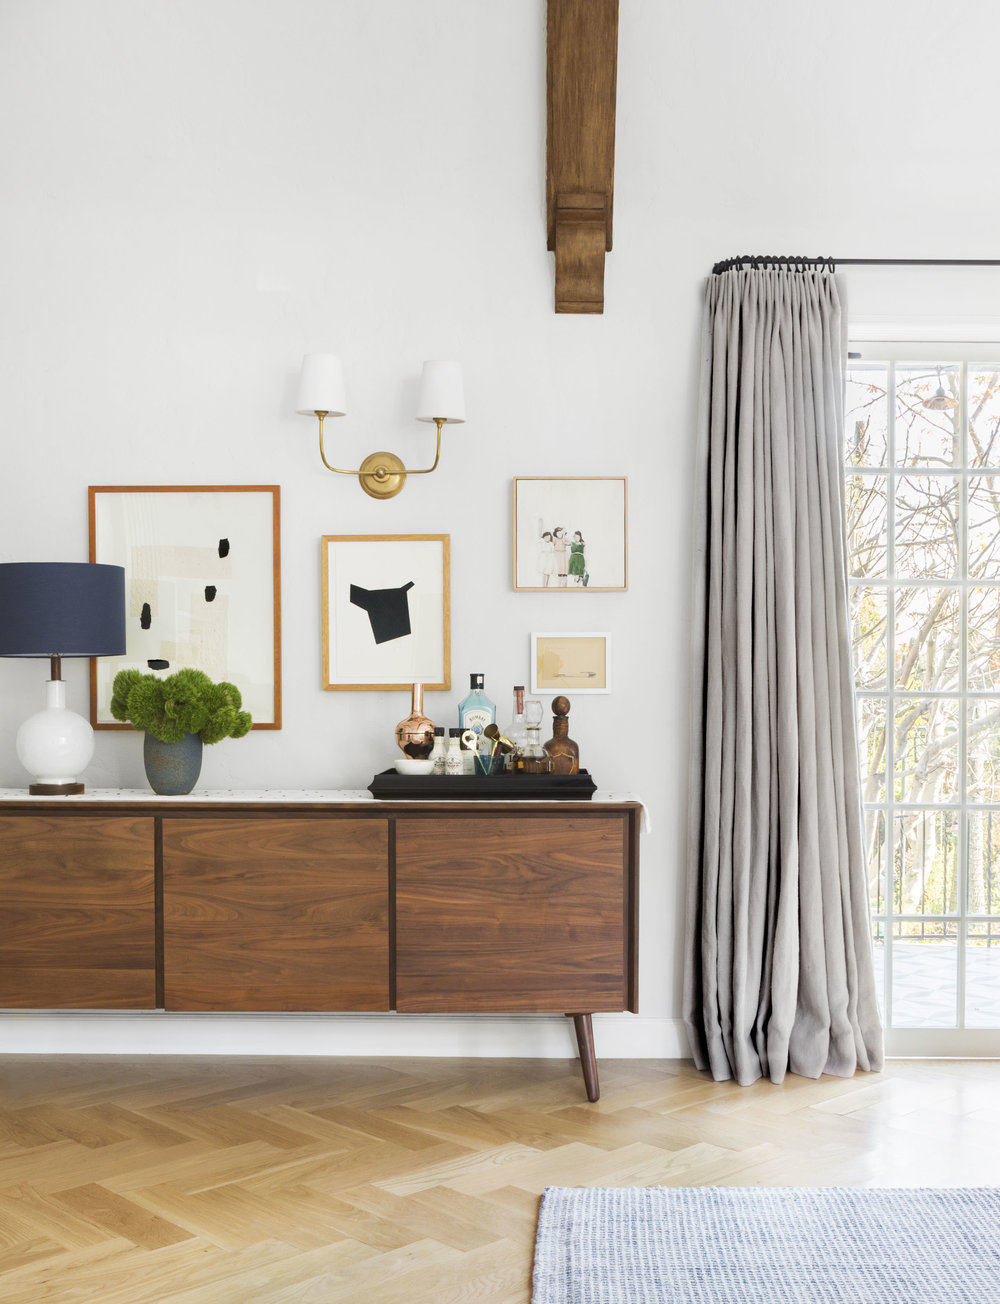 Need help picking out window treatments? I've got you covered! This simple, but thorough guide will walk you through how to choose curtains, shades, and blinds for your home.